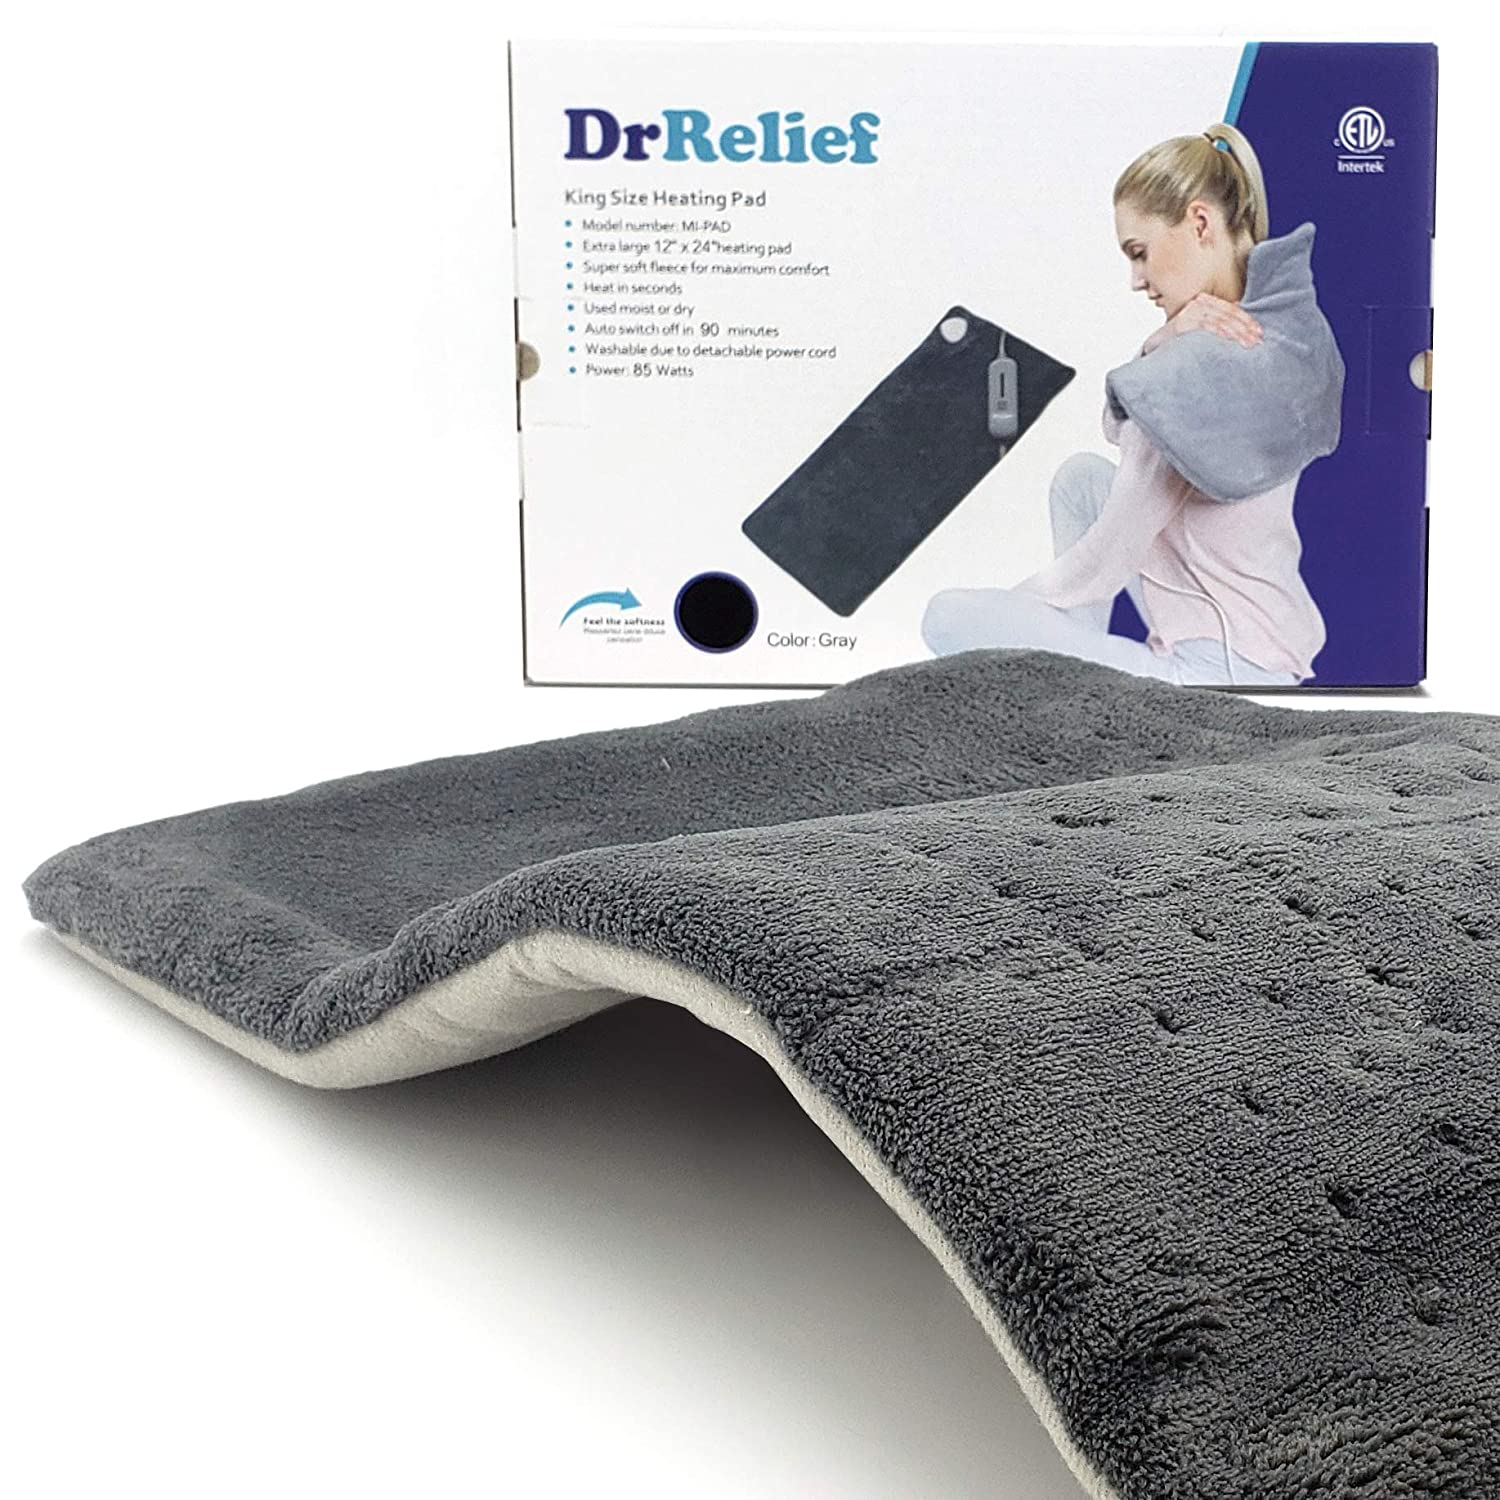 "King Size Large Heating Pad, 90 Minutes Auto Off for Back Pain, Temperature Settings, Super Soft Micro Plush, Moist or Dry Therapeutic Option, 12"" x 24"""